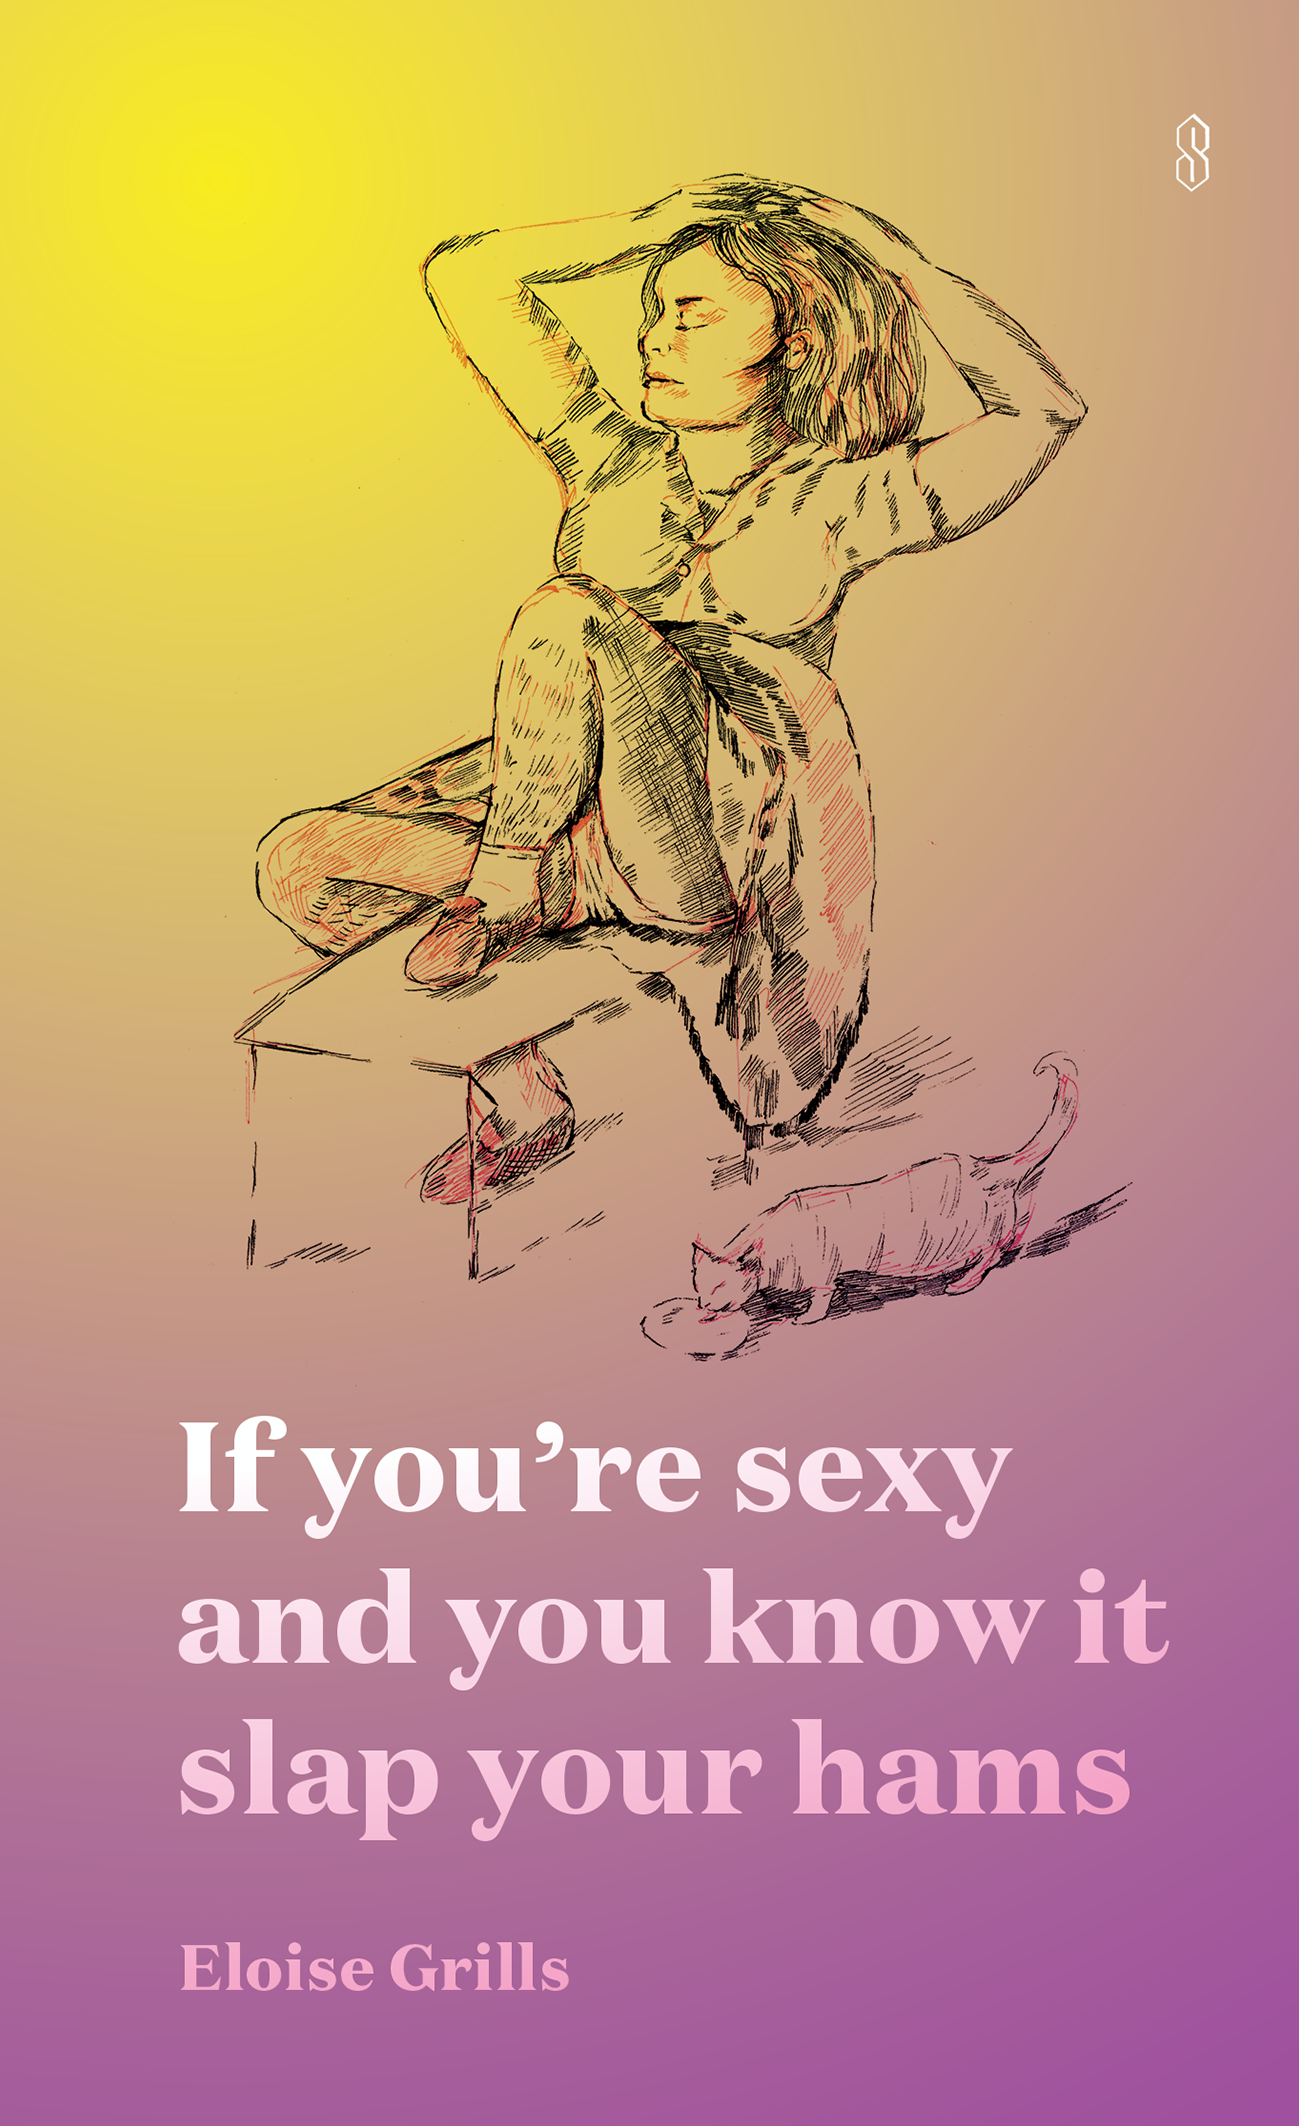 IF YOURE SEXY_ELOISE GRILLS.png